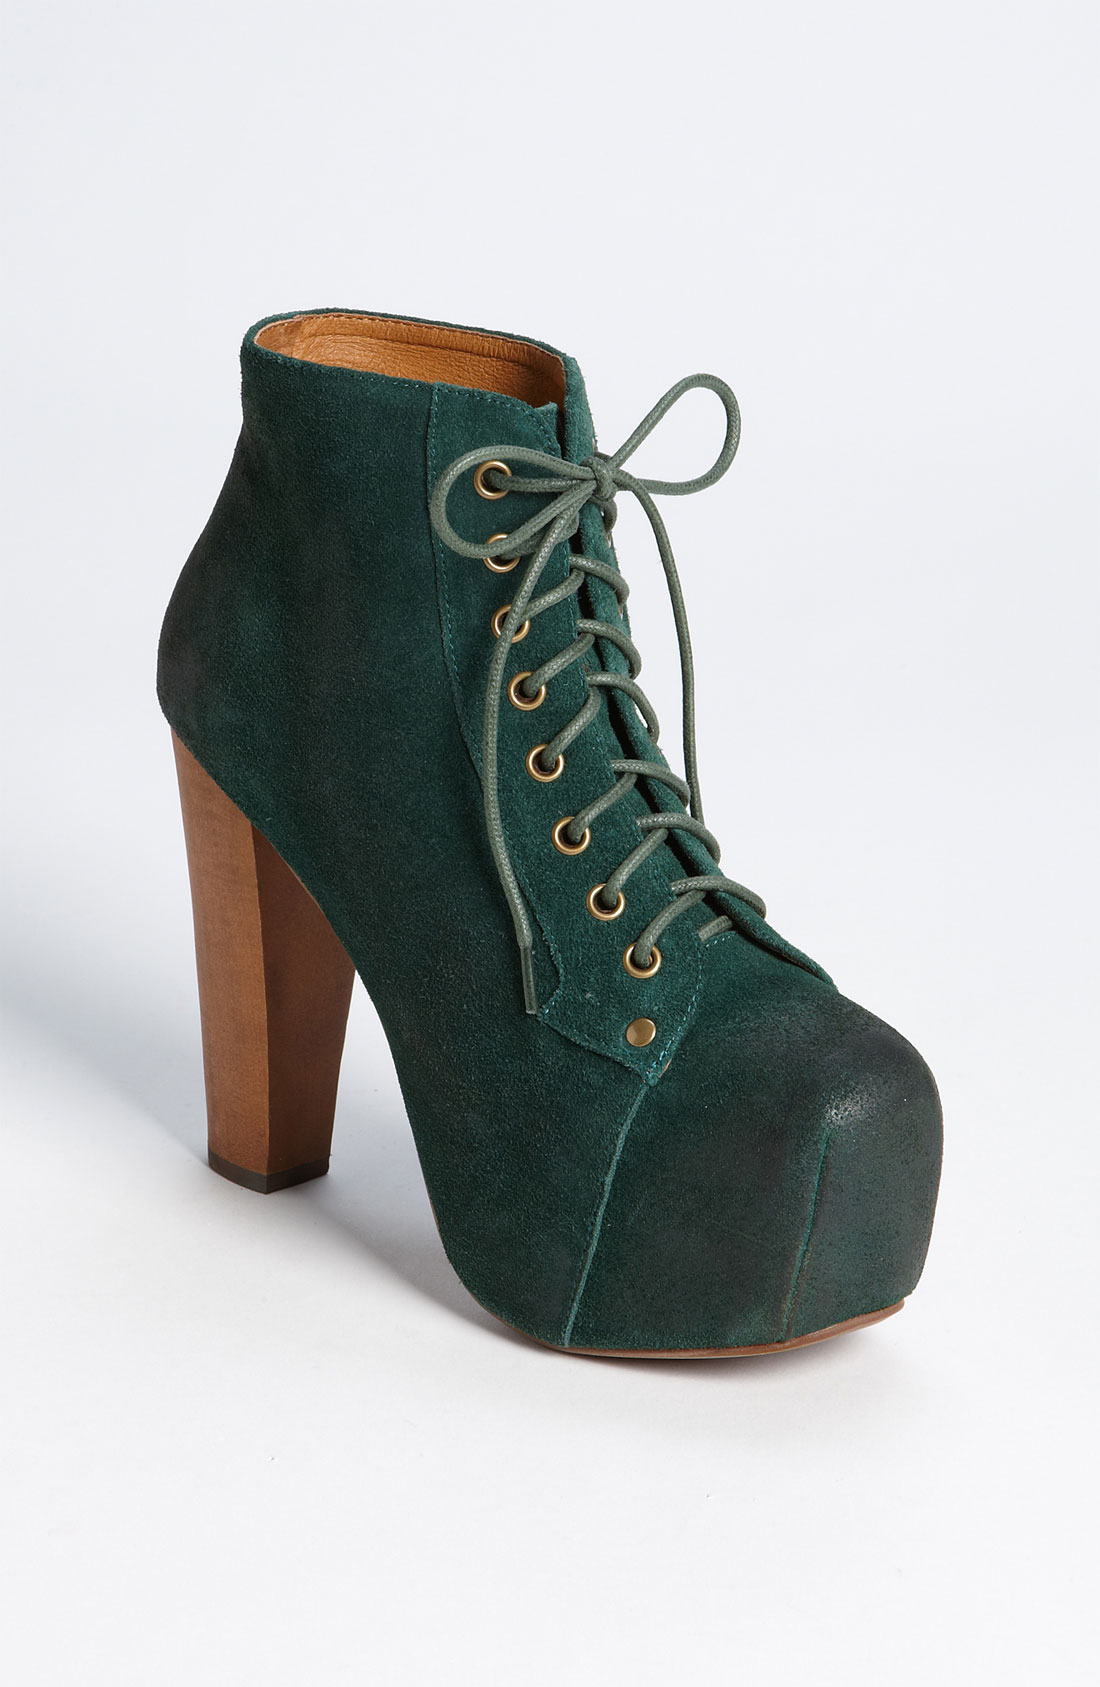 jeffrey campbell lita bootie in green forest green suede lyst. Black Bedroom Furniture Sets. Home Design Ideas